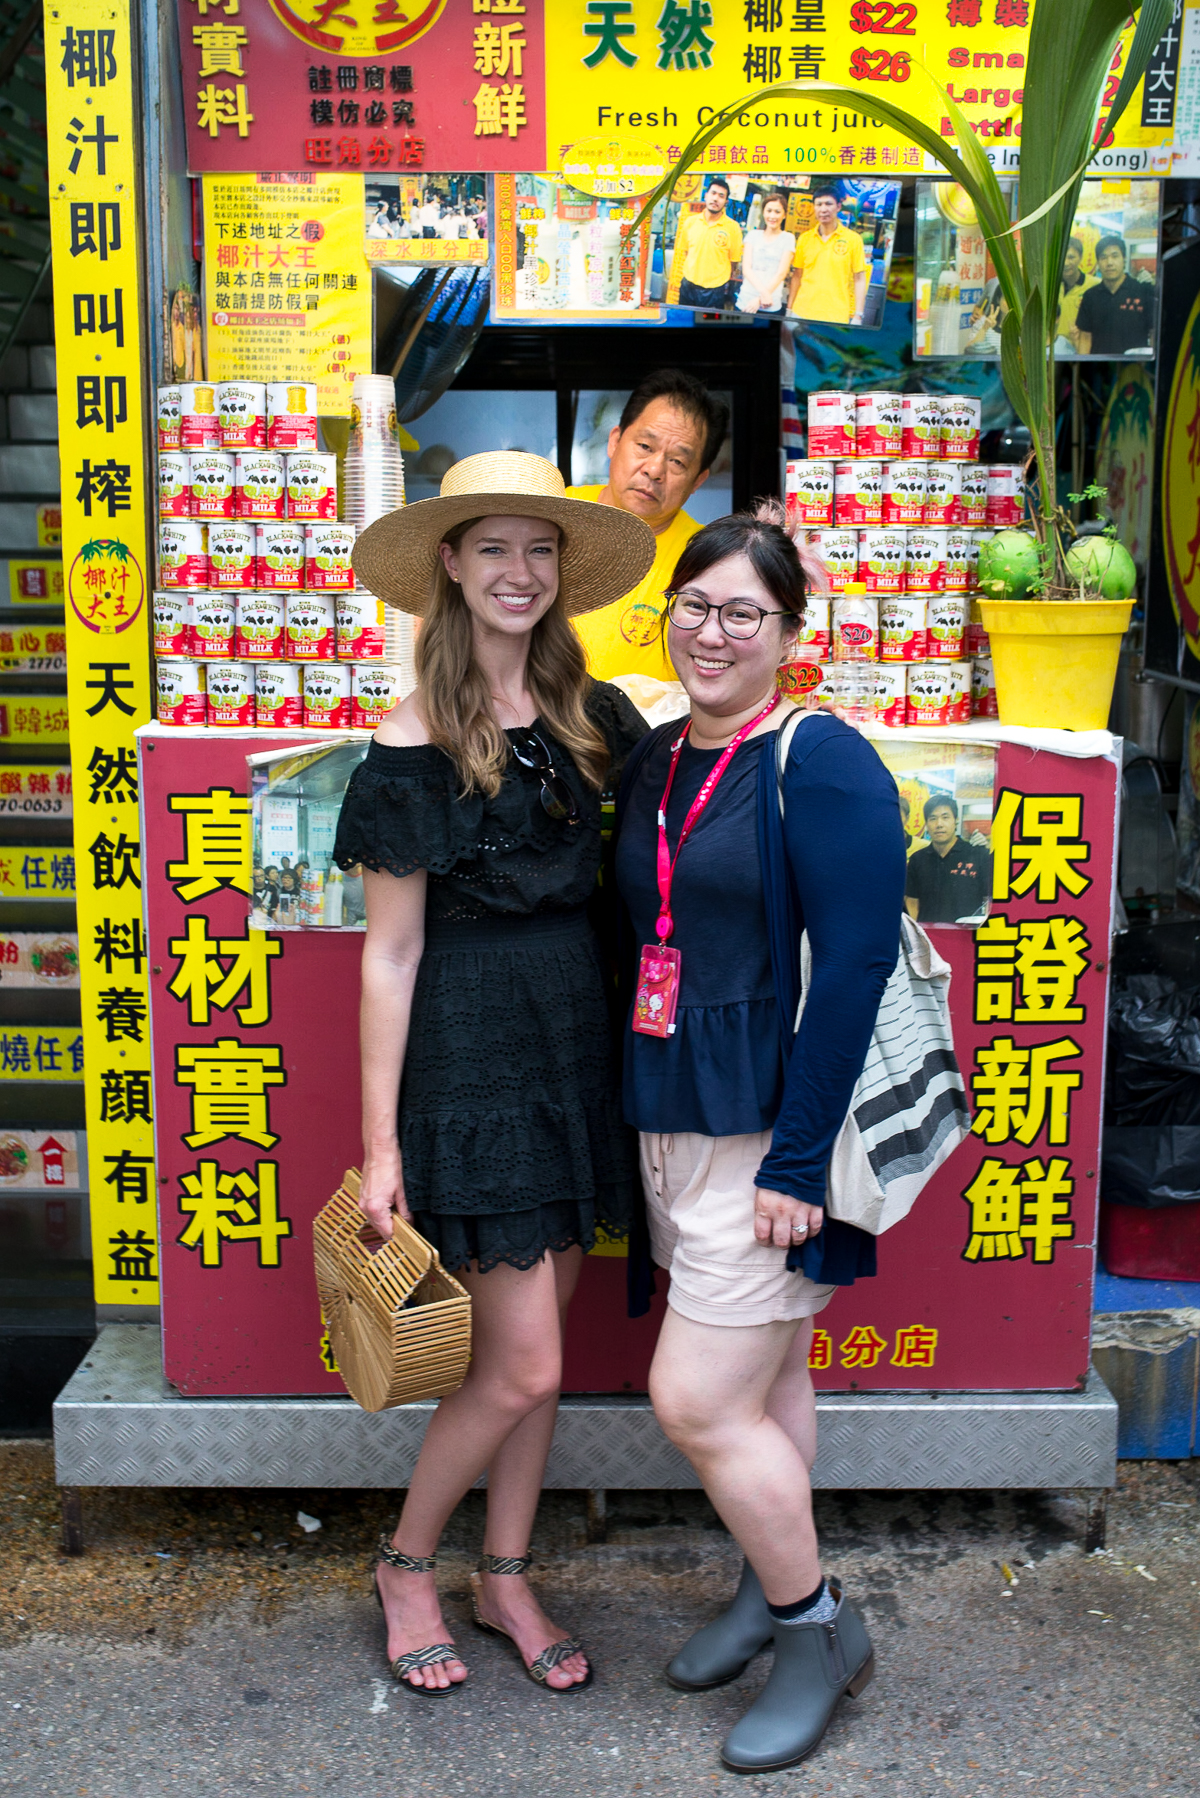 Stacie Flinner Top 10 Things to do Hong Kong-9